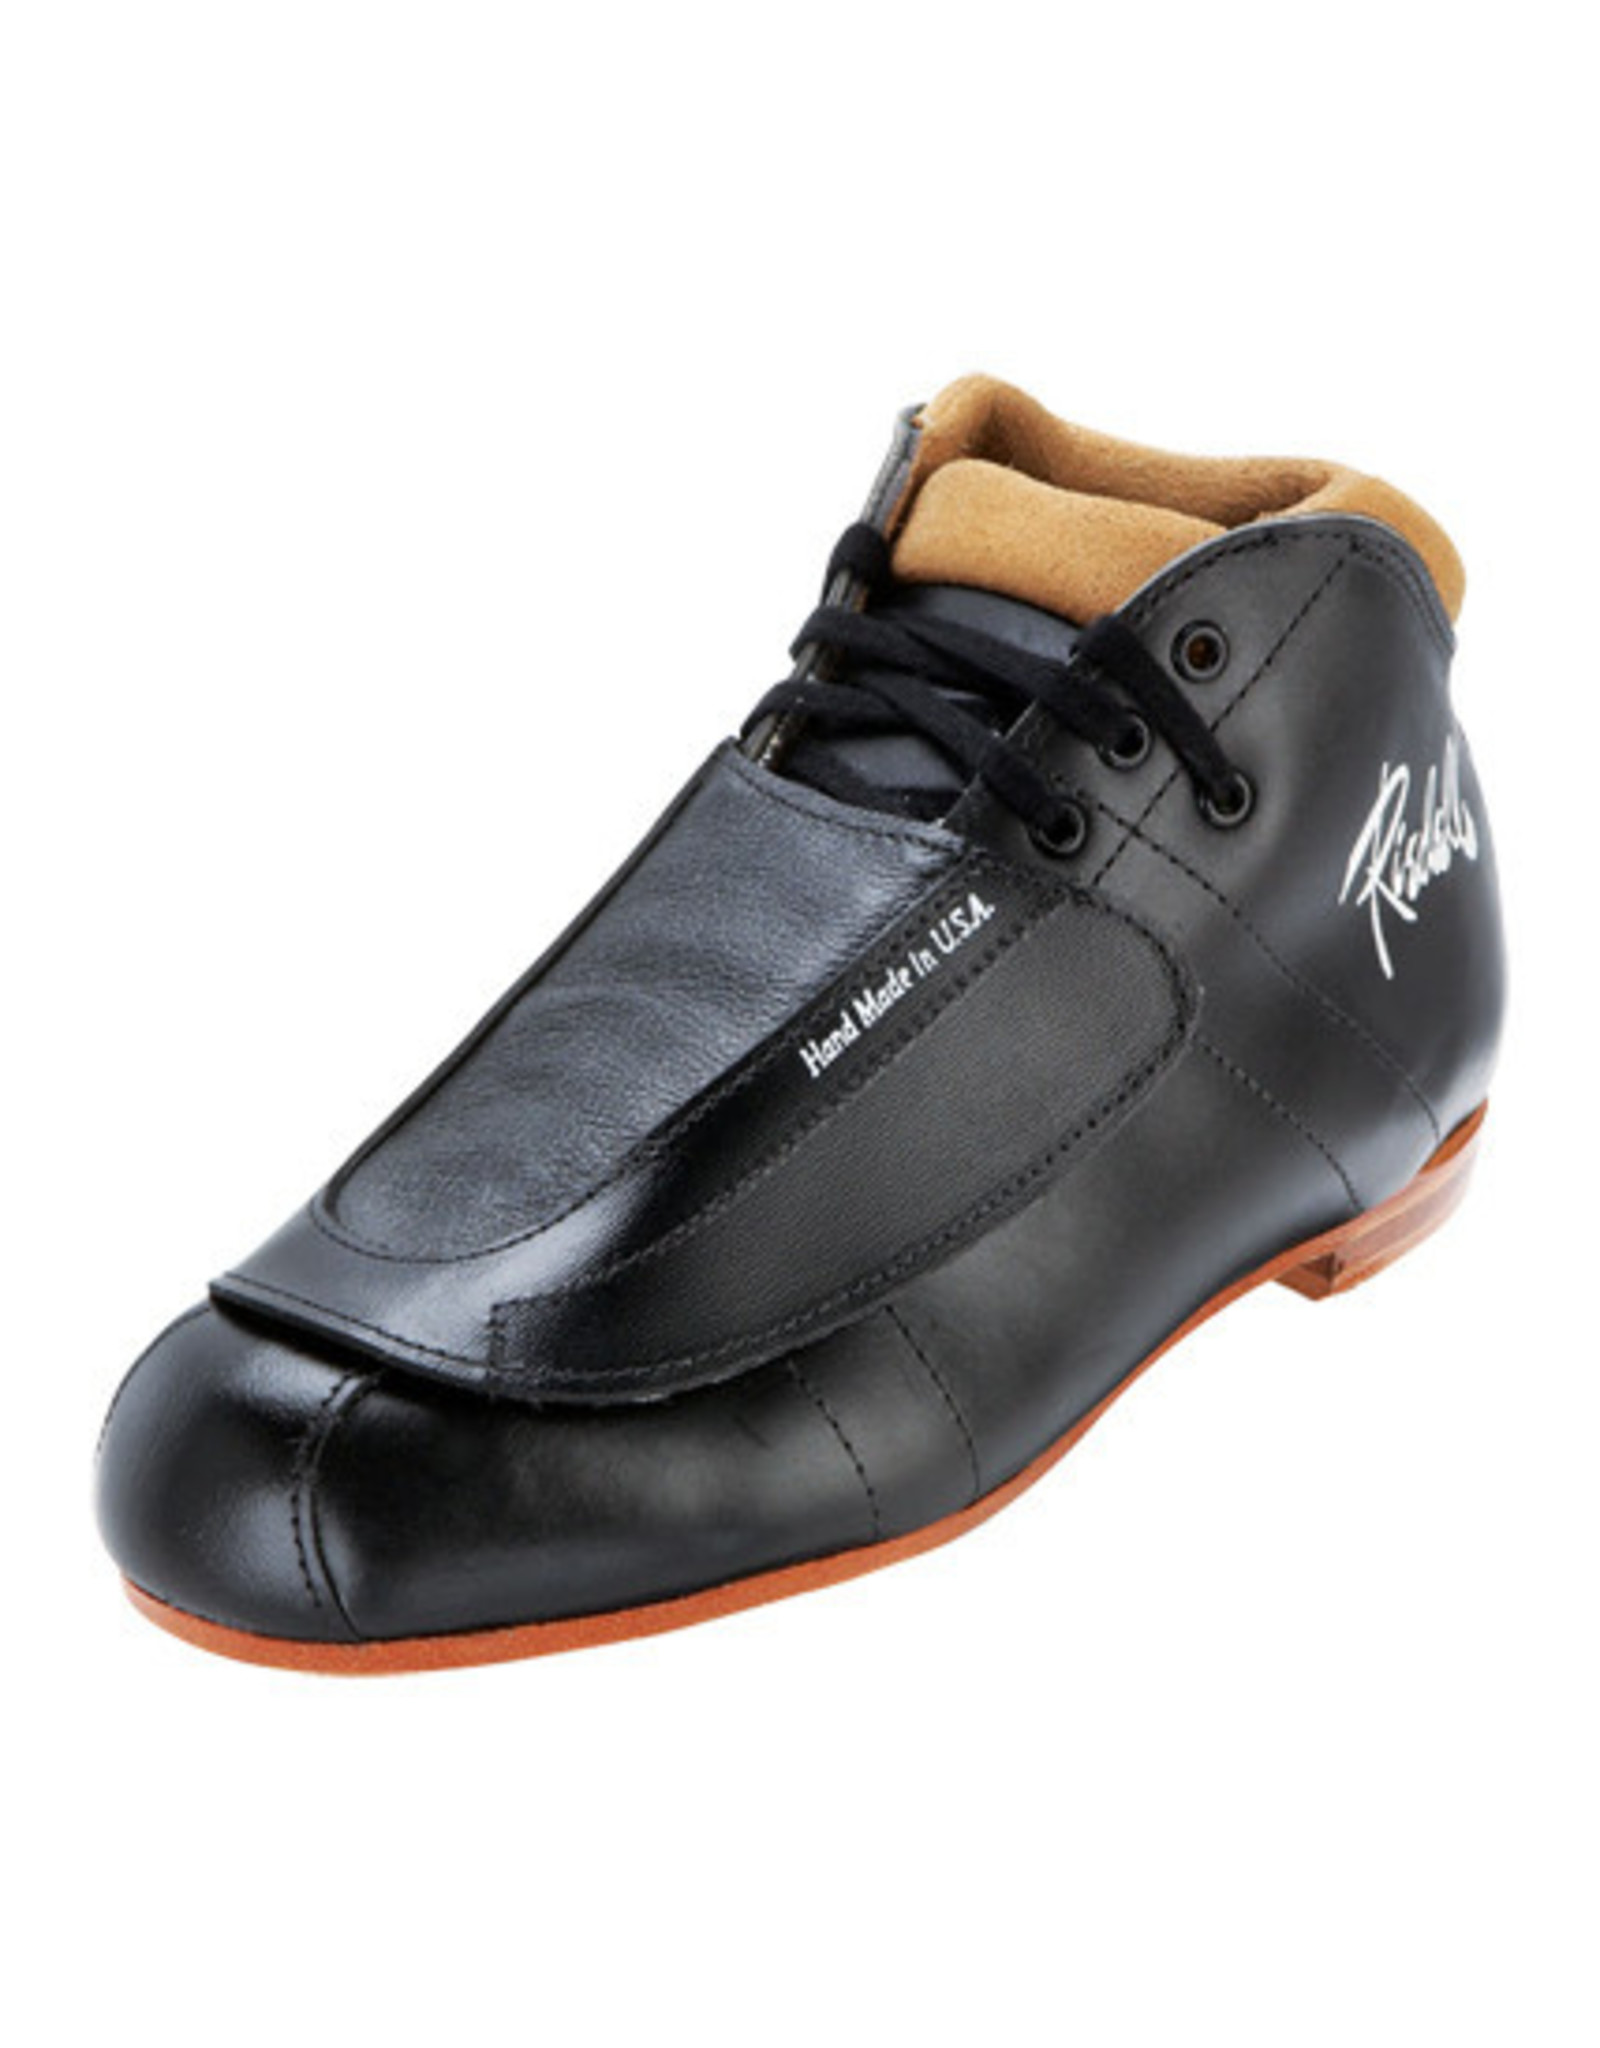 Riedell Riedell 965 Boot Black